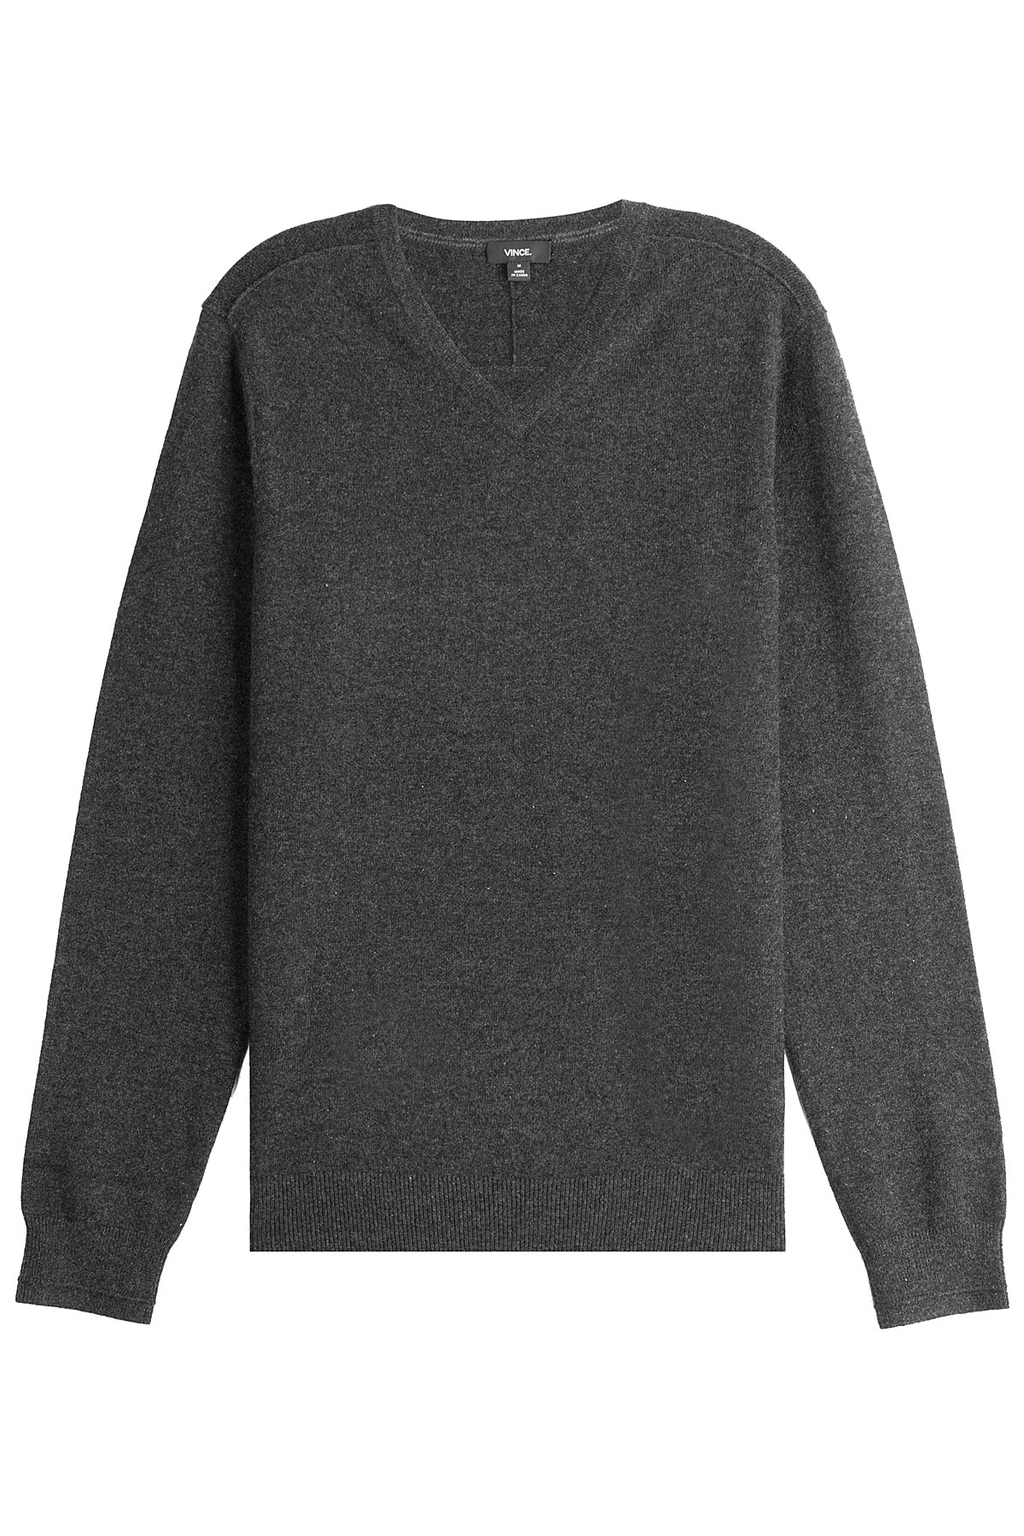 Cashmere Pullover - neckline: v-neck; pattern: plain; style: standard; predominant colour: charcoal; occasions: casual; length: standard; fit: standard fit; fibres: cashmere - 100%; sleeve length: long sleeve; sleeve style: standard; texture group: knits/crochet; pattern type: knitted - fine stitch; wardrobe: investment; season: a/w 2016